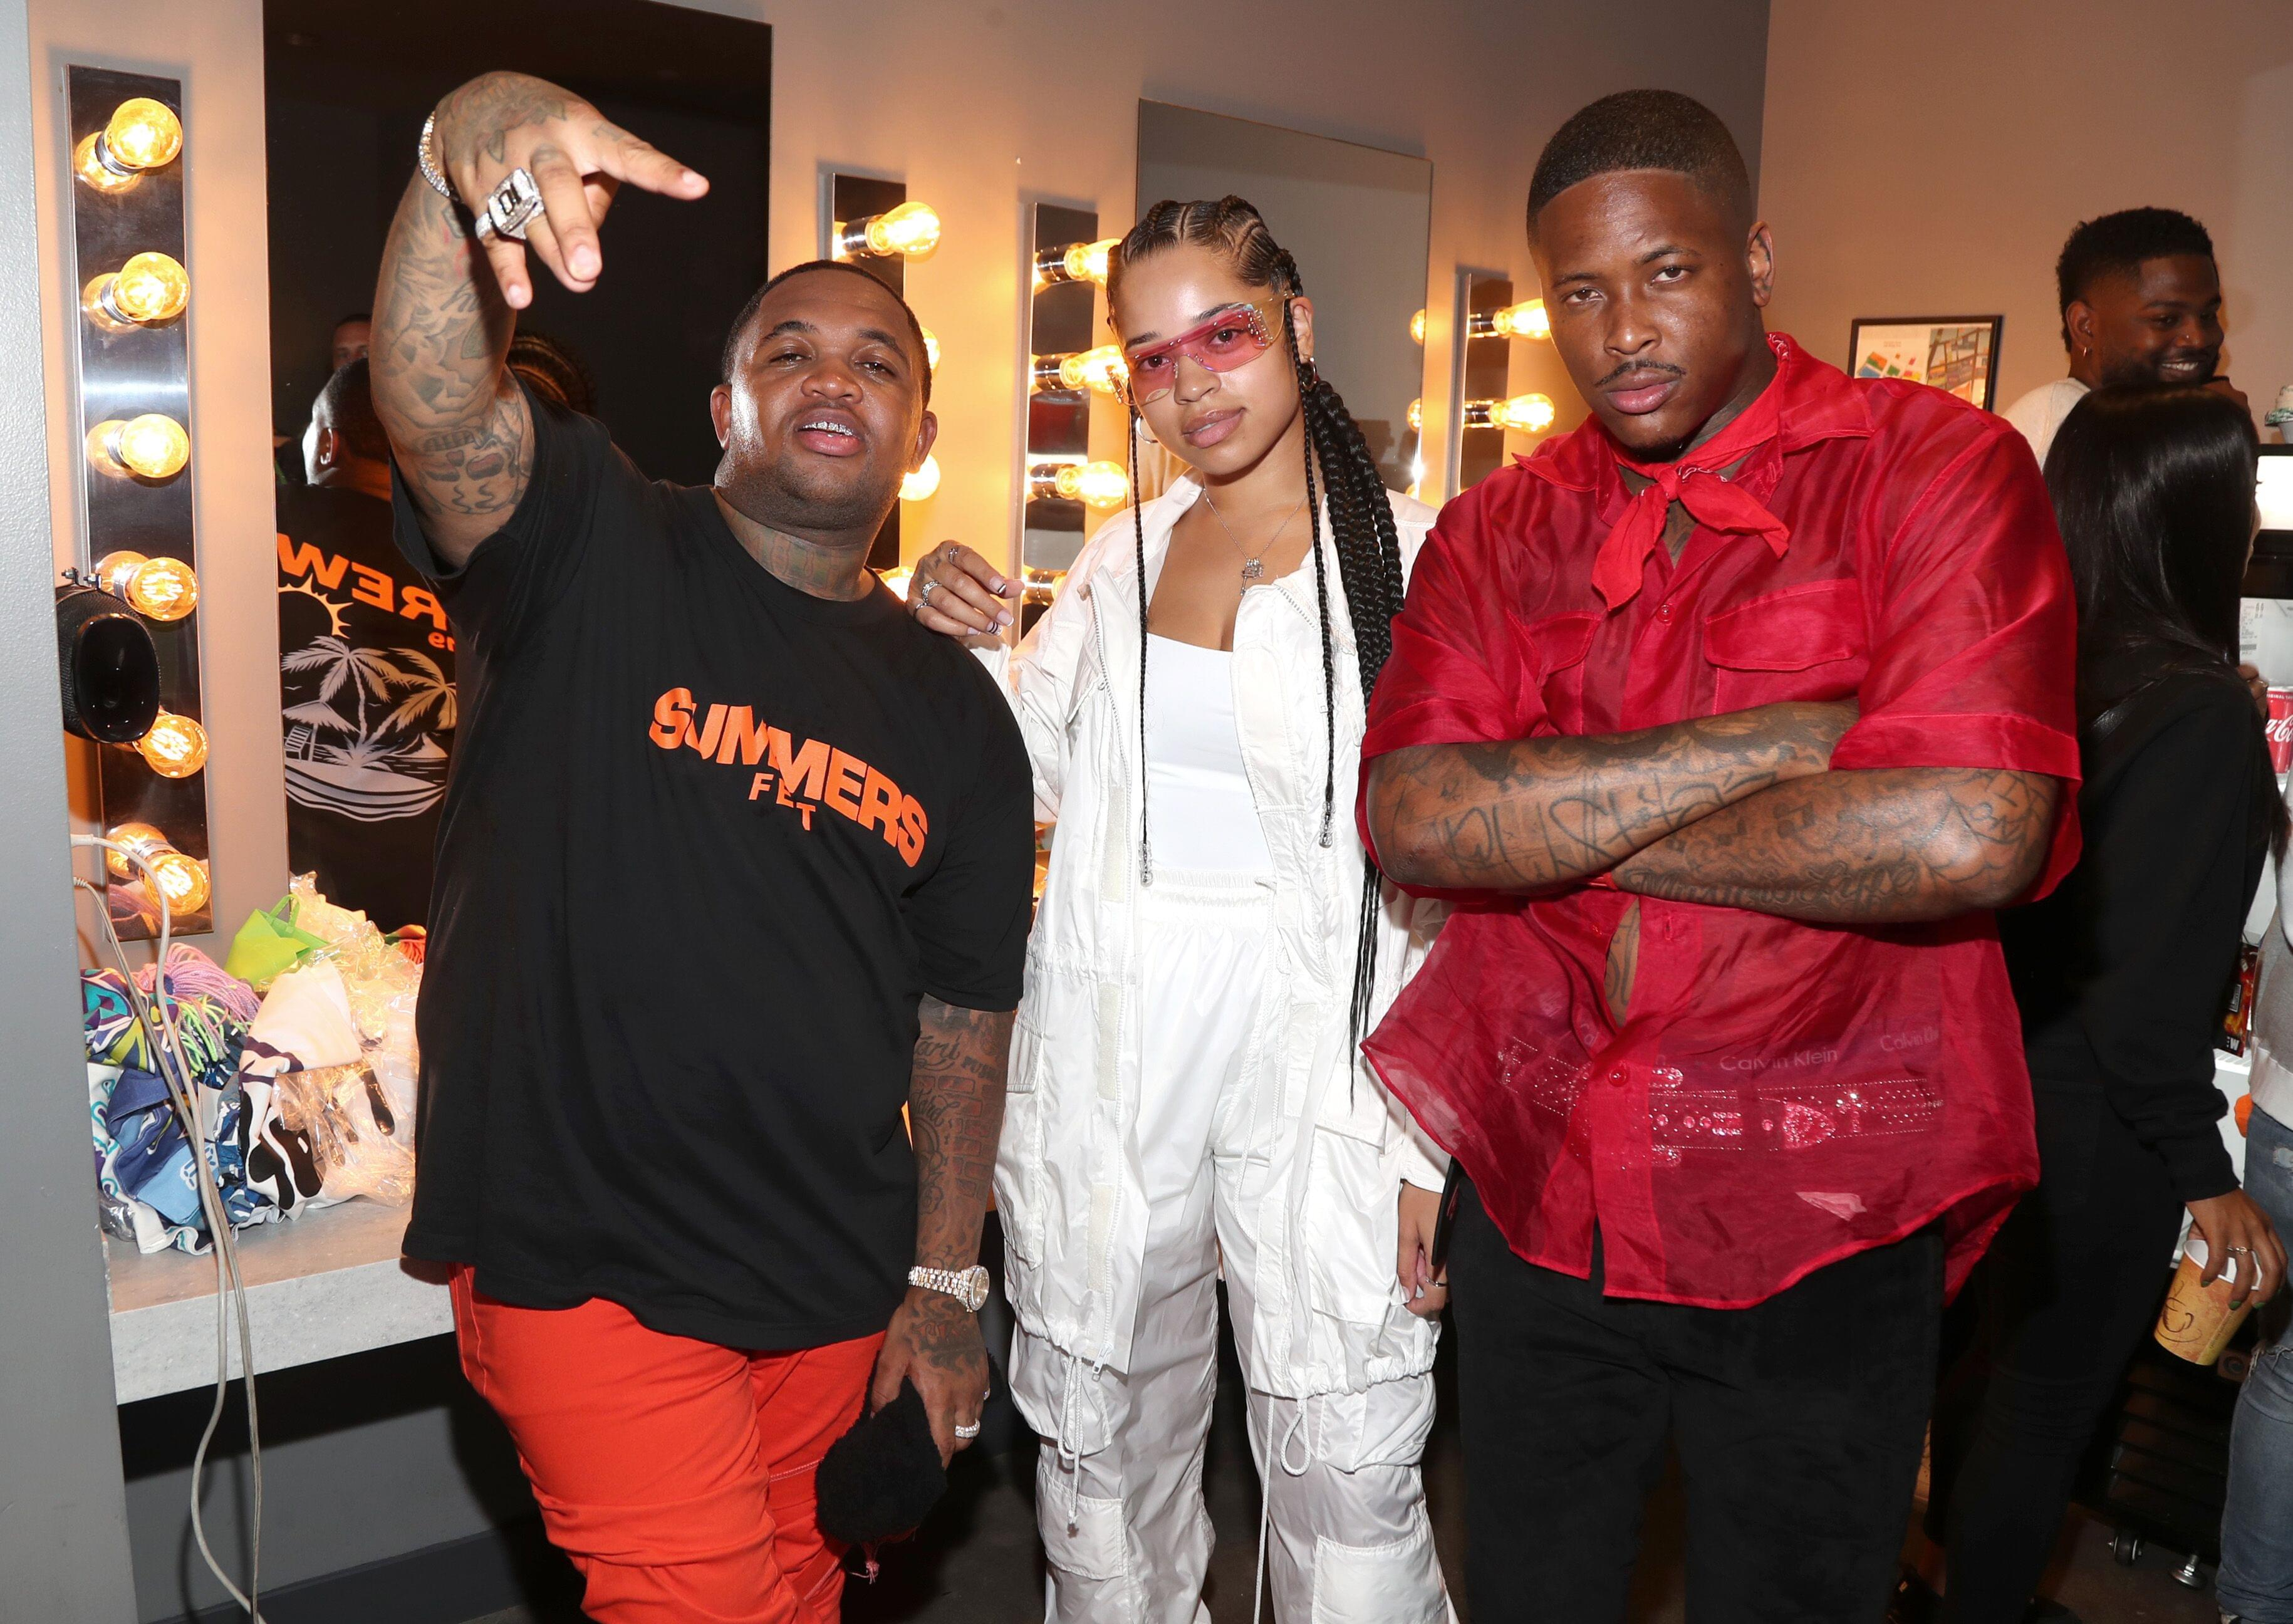 Mustard Shuts Down First Ever Summers Fest w/ YG, Ella Mai, Migos, A$AP Ferg, Roddy Ricch & More!